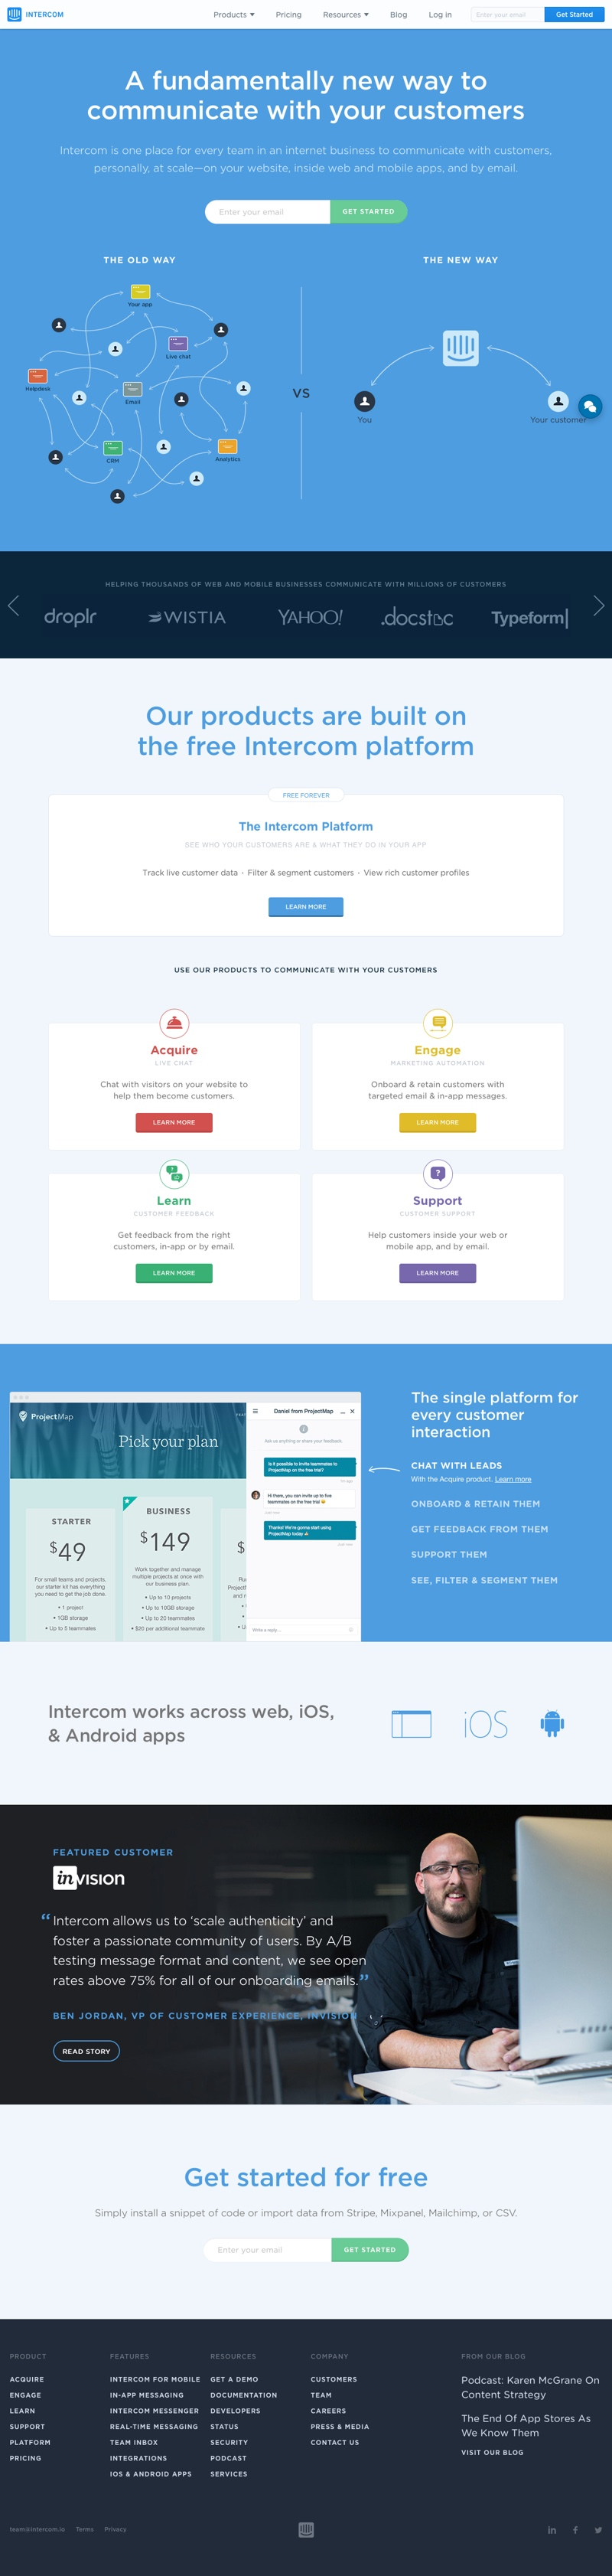 landing-page-intercom